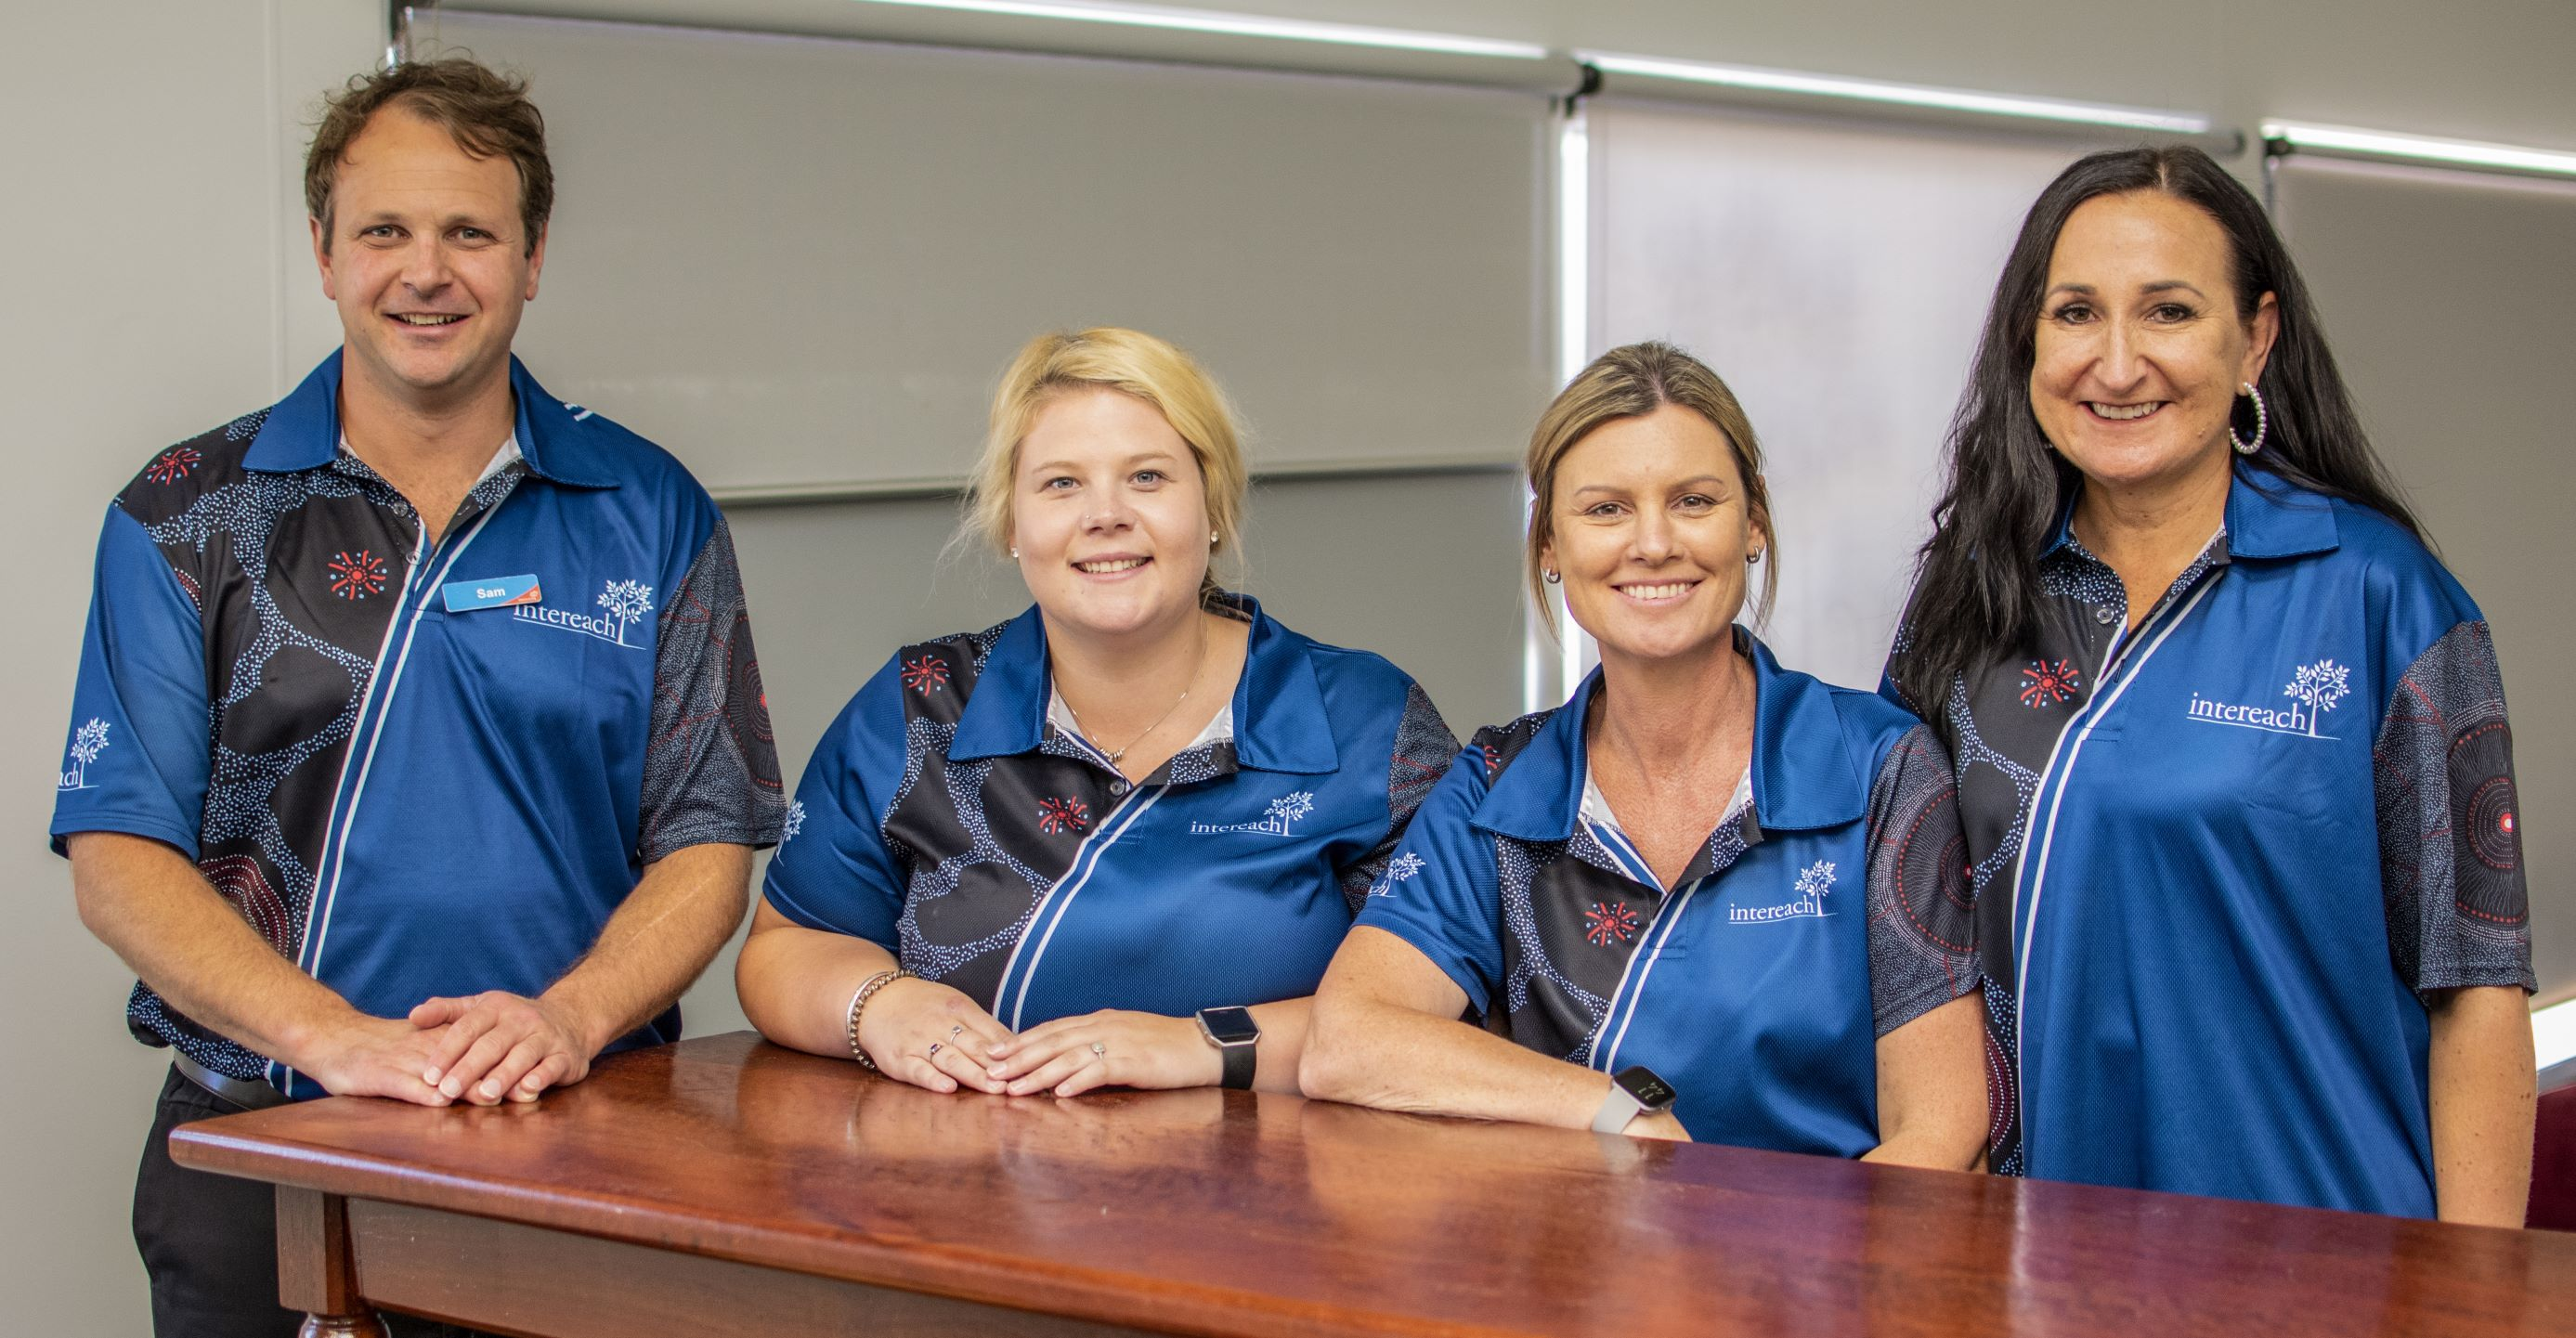 Intereach staff in new polo shirts